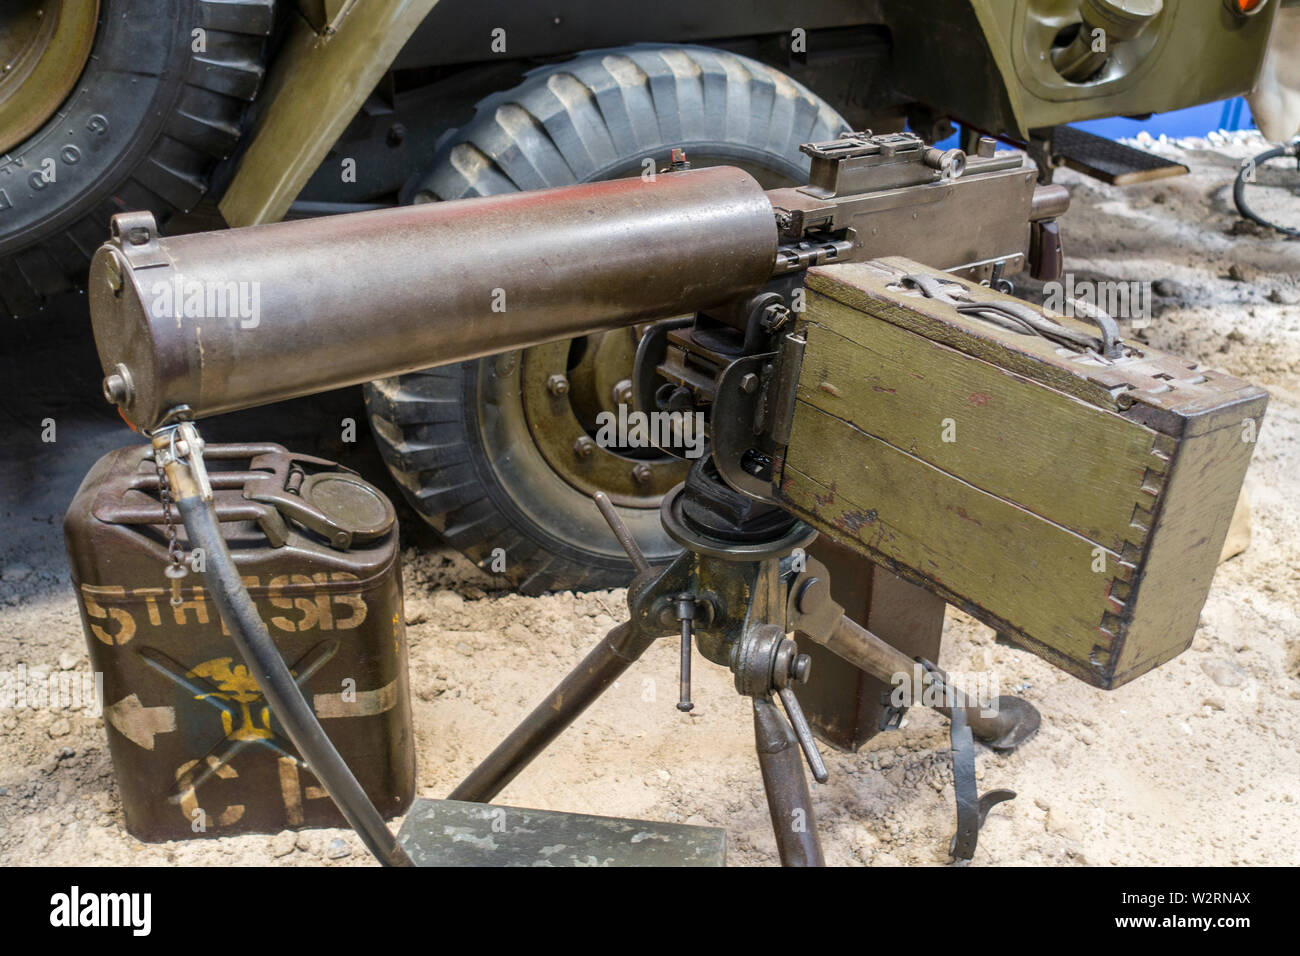 World War Two water-cooled M1917A1 / M1917 A1 Browning machine gun mounted on tripod, used by the United States Armed Forces during WW2 - Stock Image